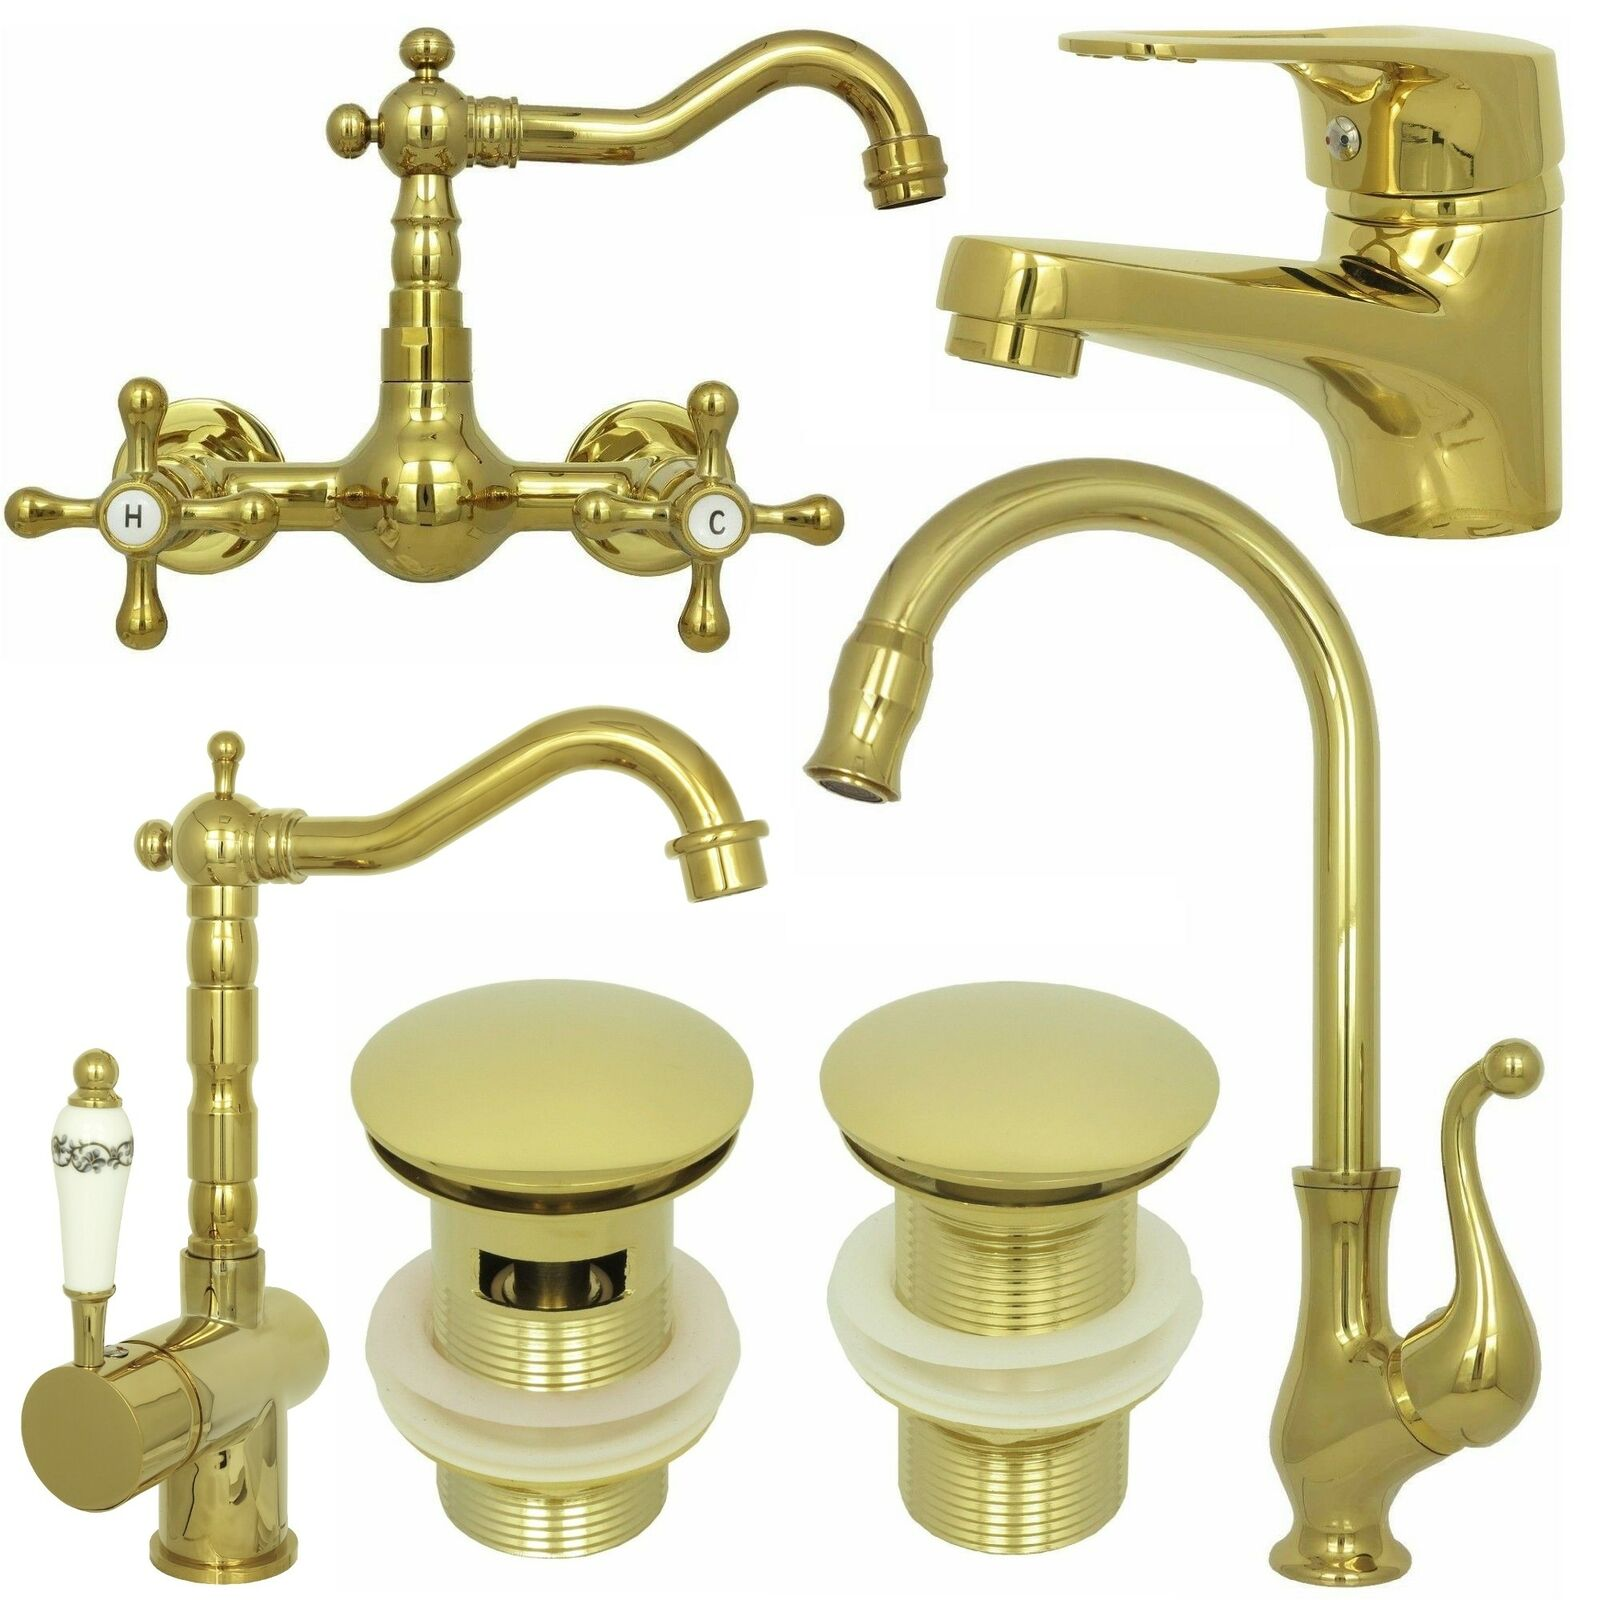 retro waschtisch waschalen wasserhahn einhebel k chen sp ltisch armatur in gold eur 44 95. Black Bedroom Furniture Sets. Home Design Ideas